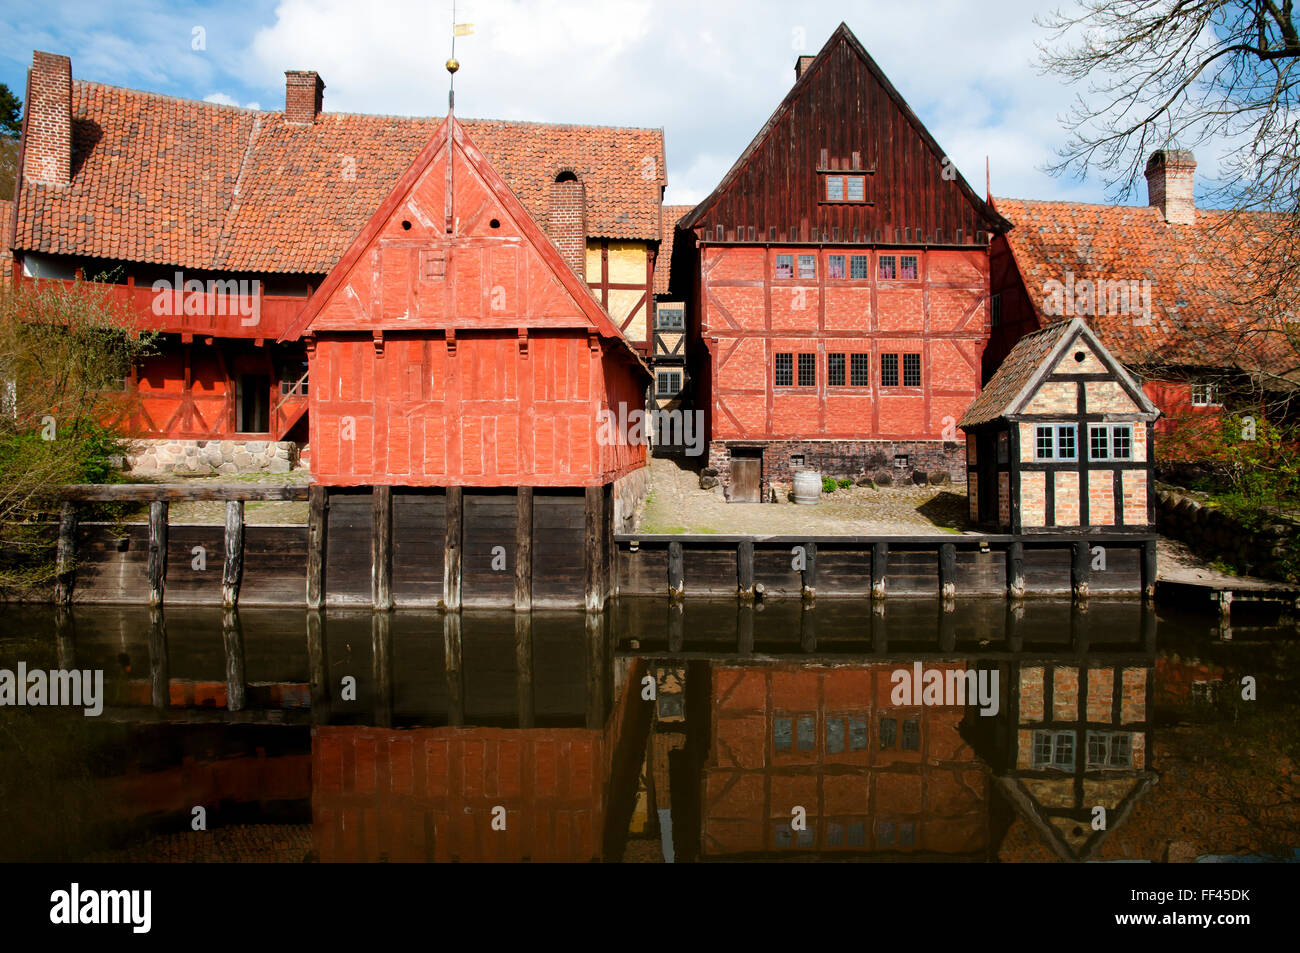 The Old Town Museum - Aarhus - Denmark - Stock Image